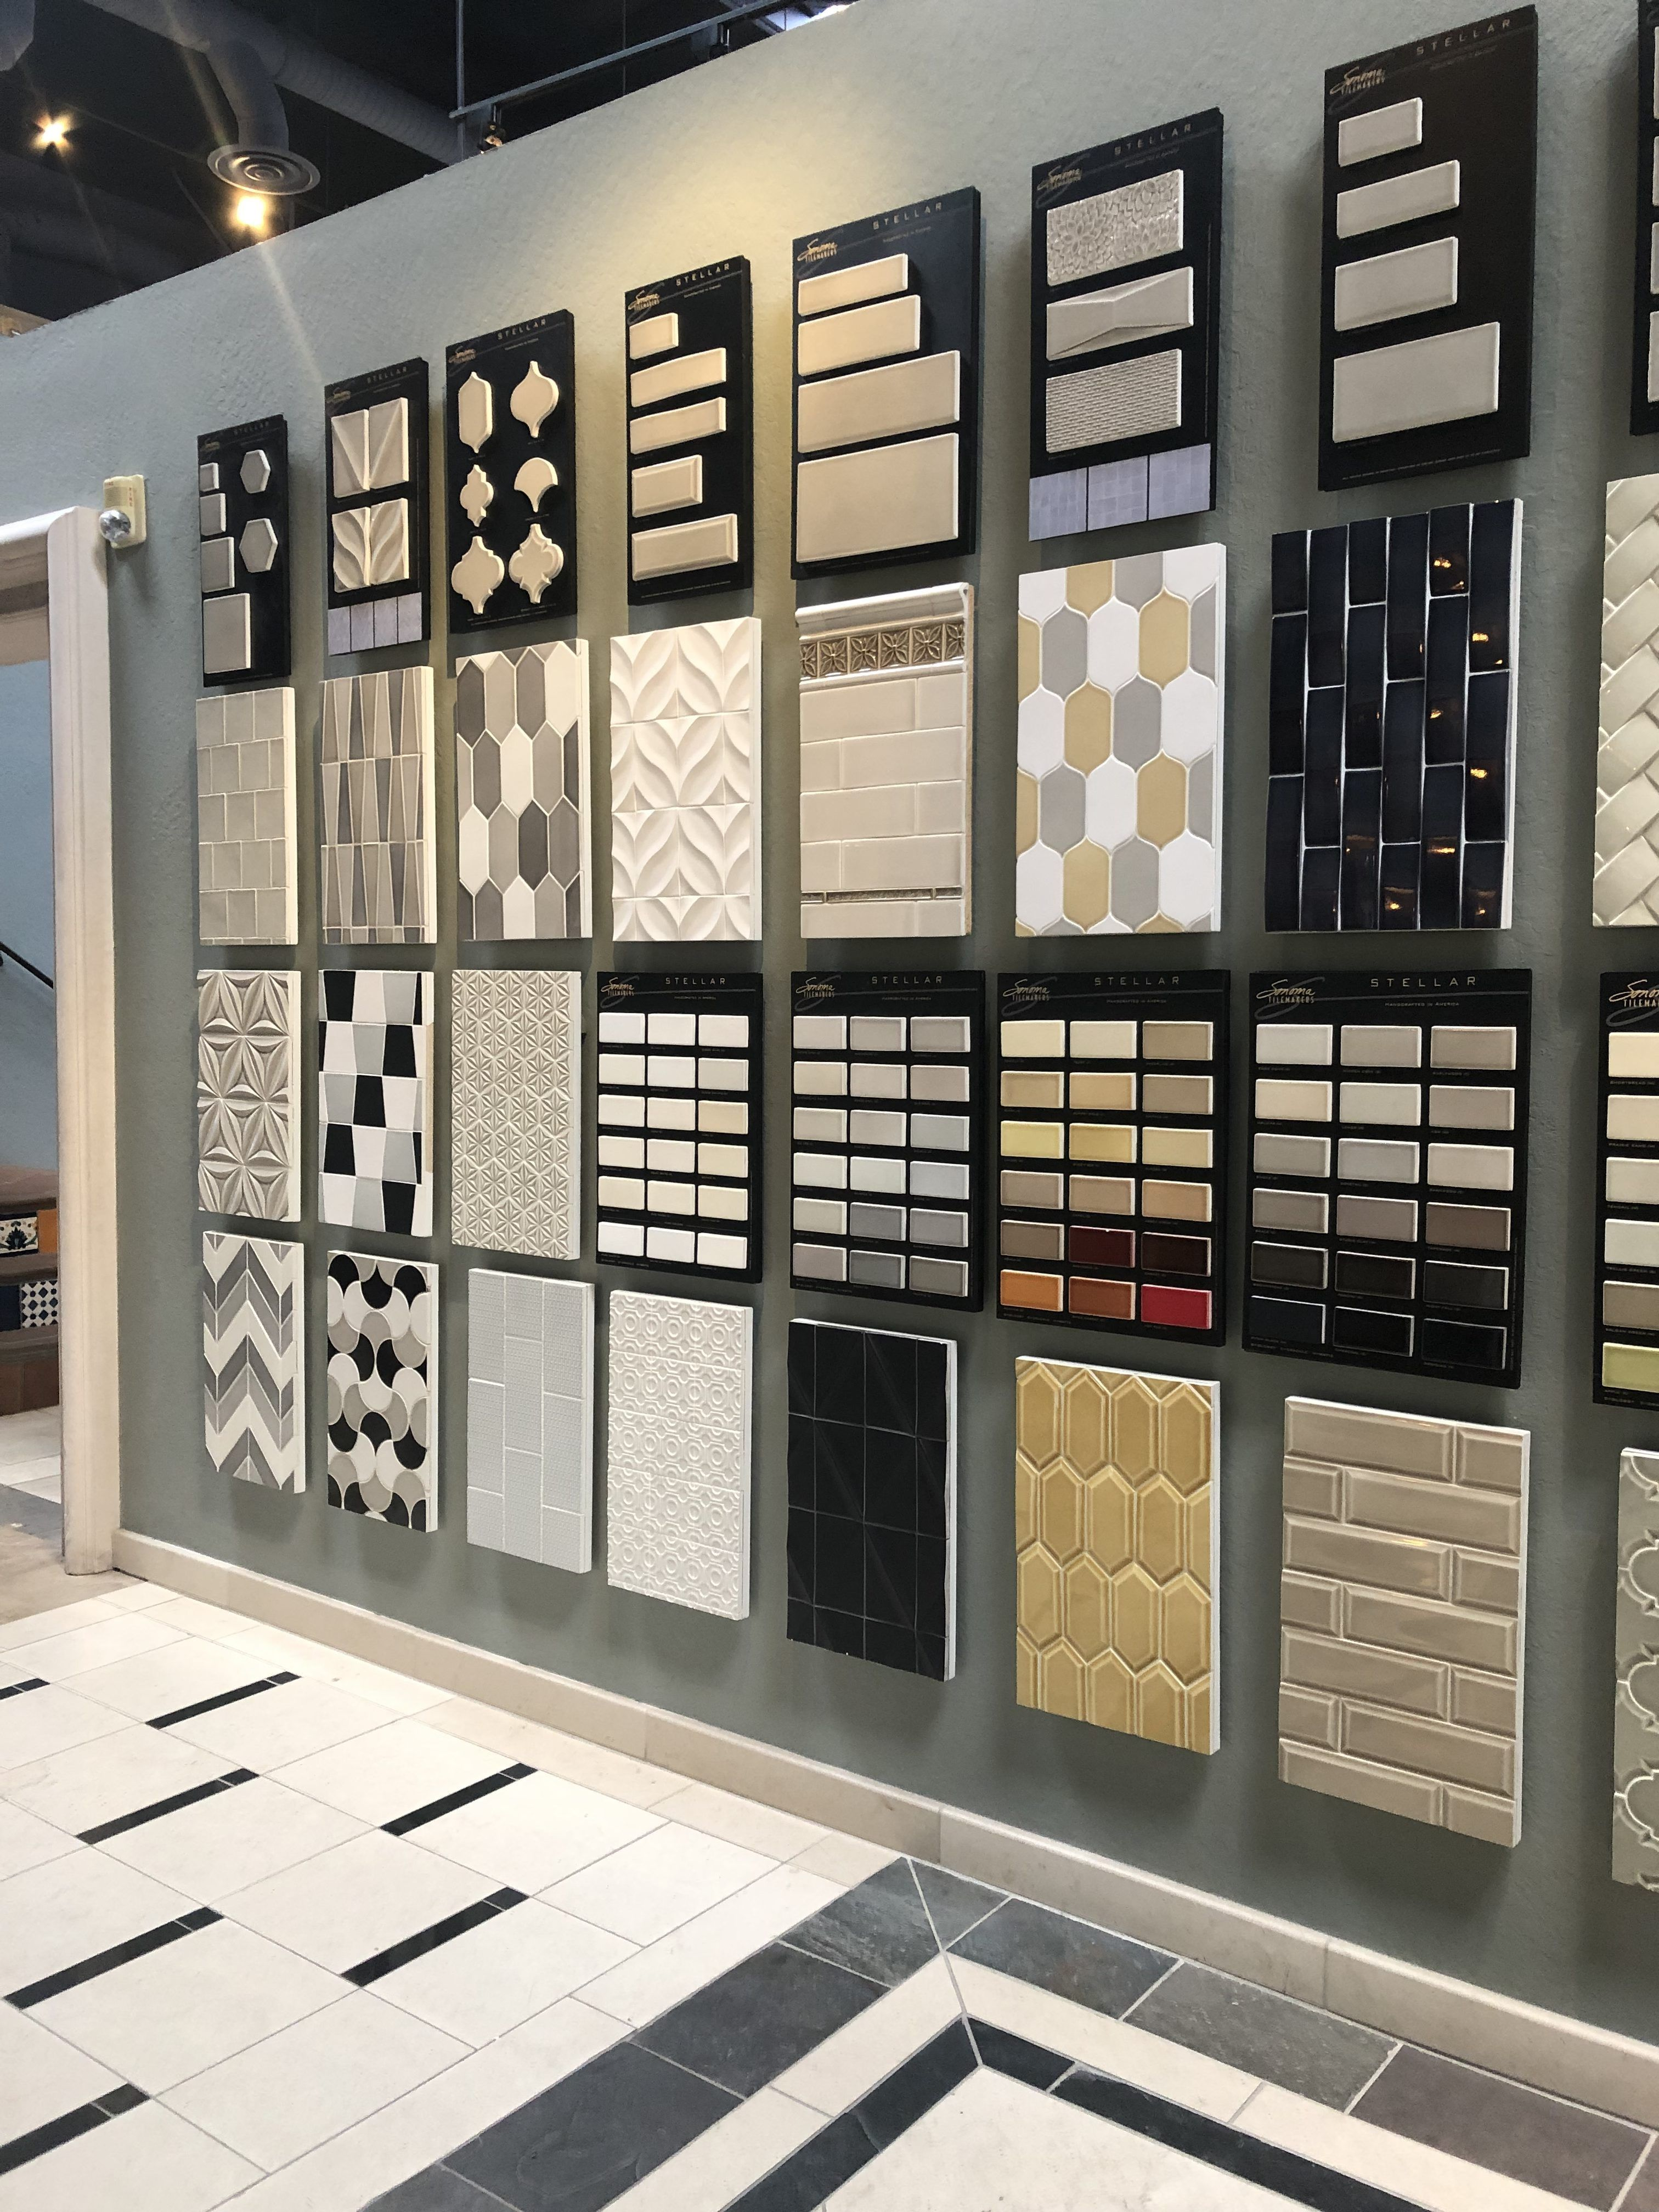 Amazing Tile Selection At Nsdesigngallery Luxury Tile And Stone Options Beyond The Hardware Store Showroom Interior Design Luxury Tile Showroom Design